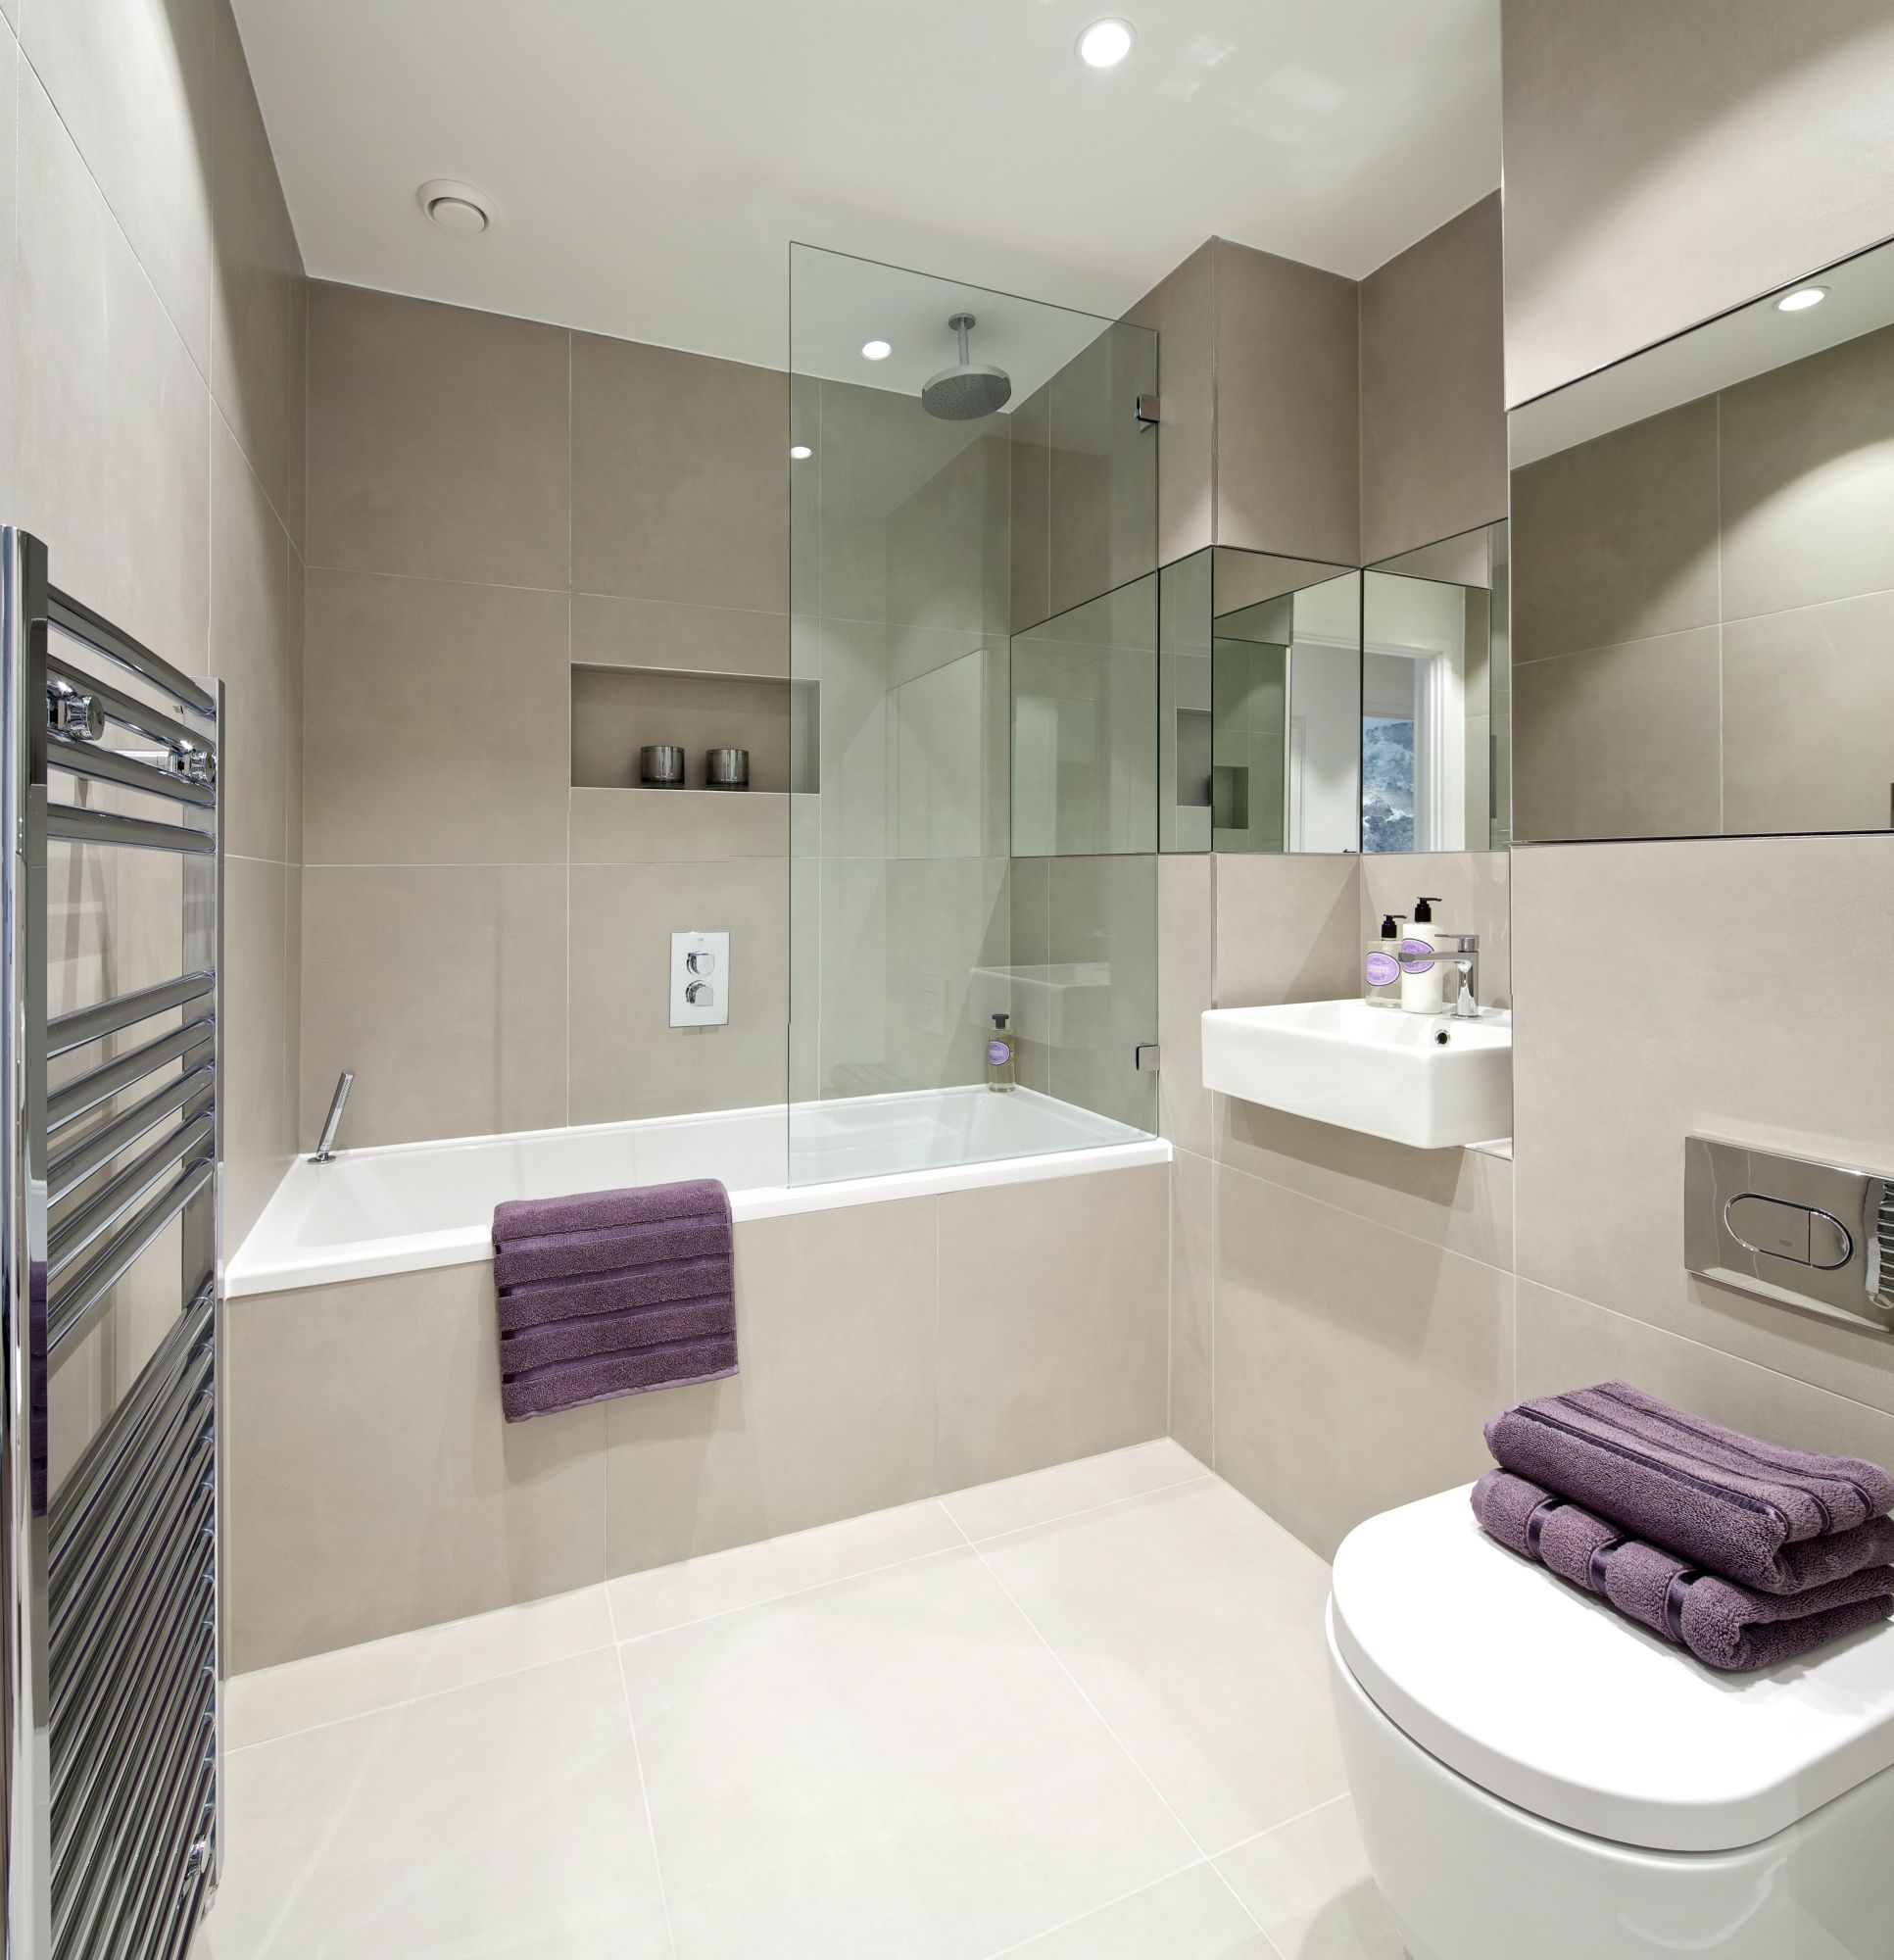 Stunning home interiors bathroom another stunning show home design by suna interior design Interior design half bathroom